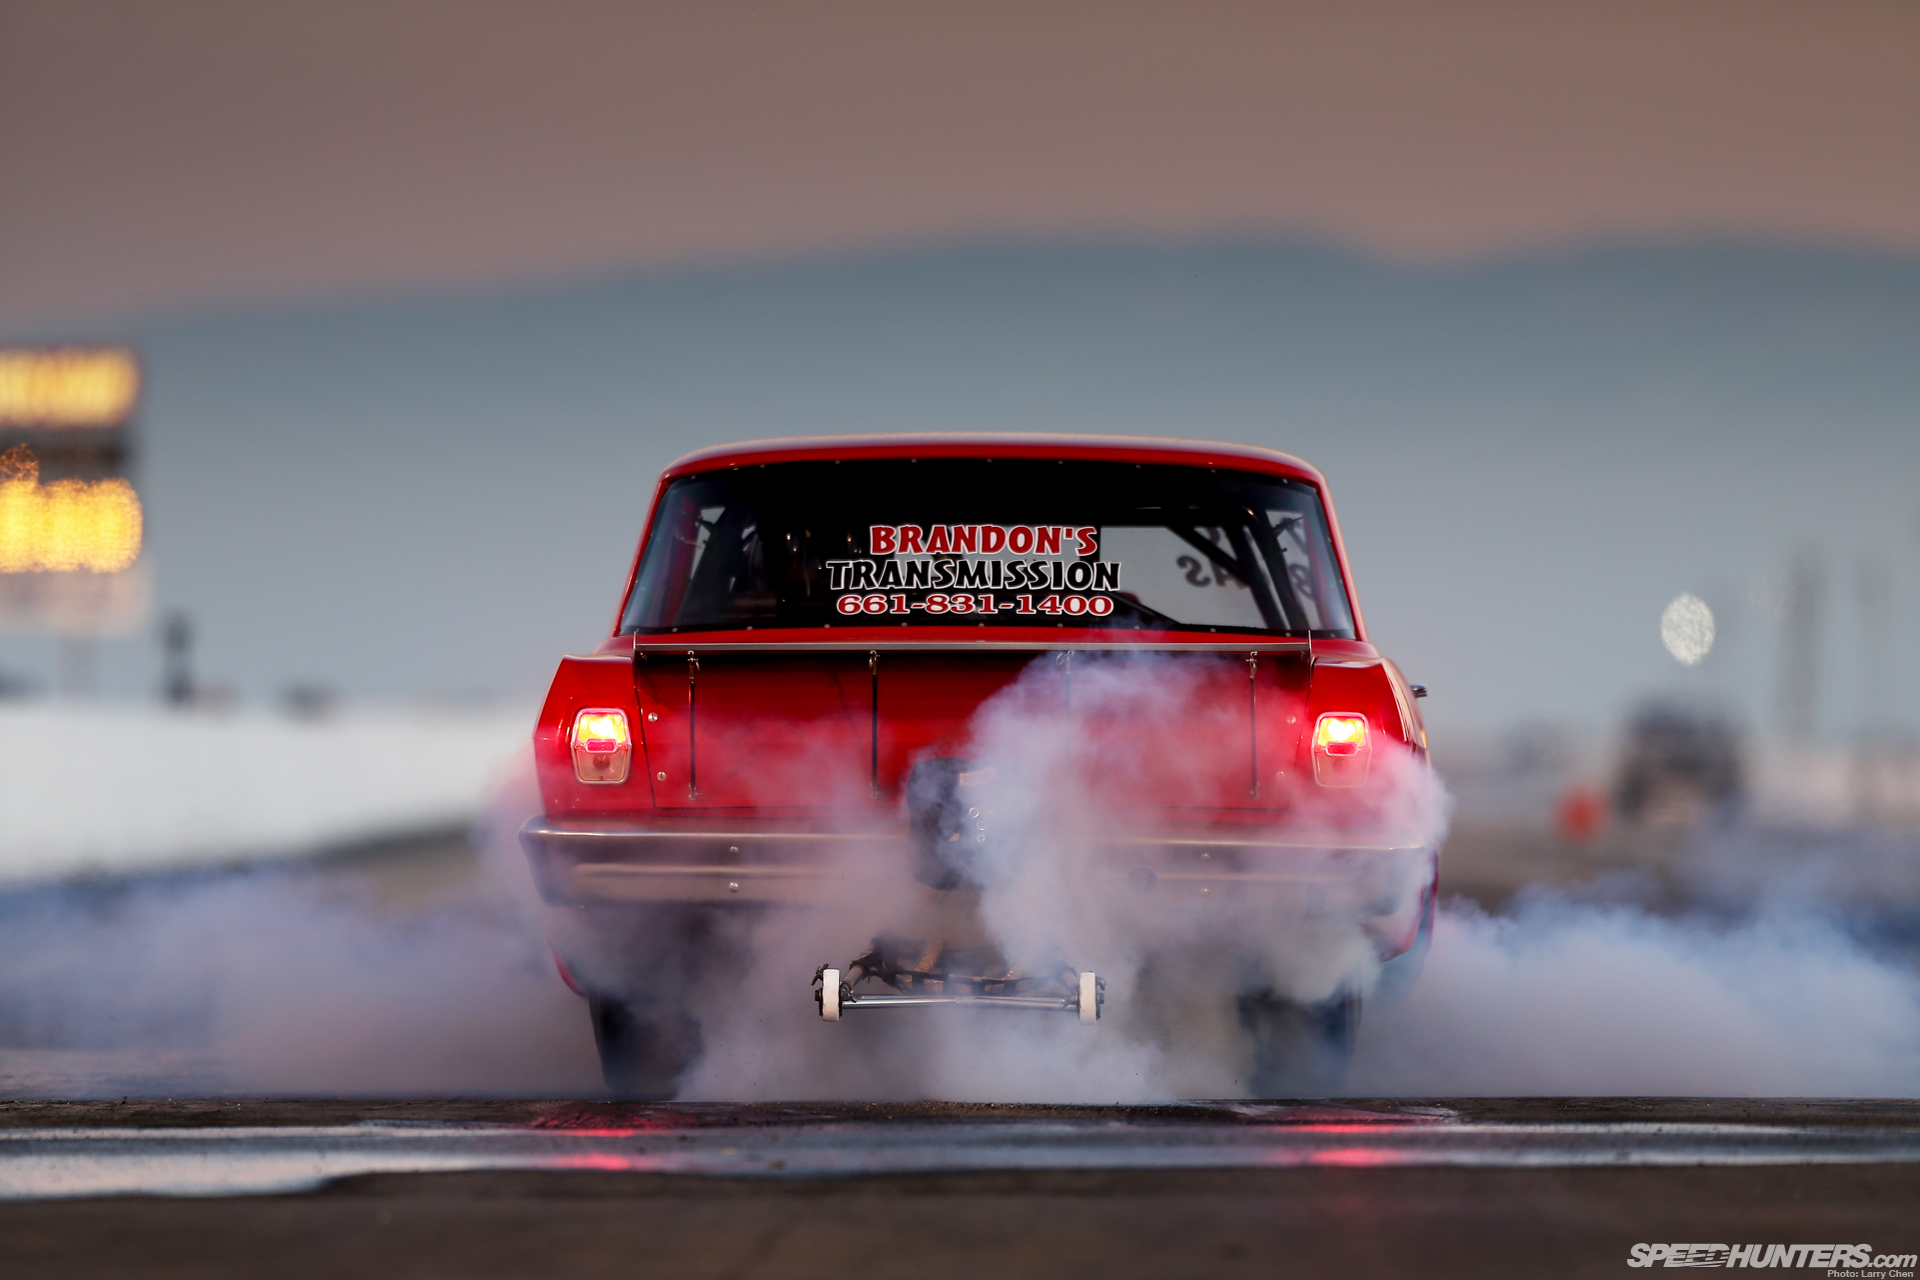 Drag Race Race Car Burnout Smoke Drag Strip Chevrolet Hot Rods